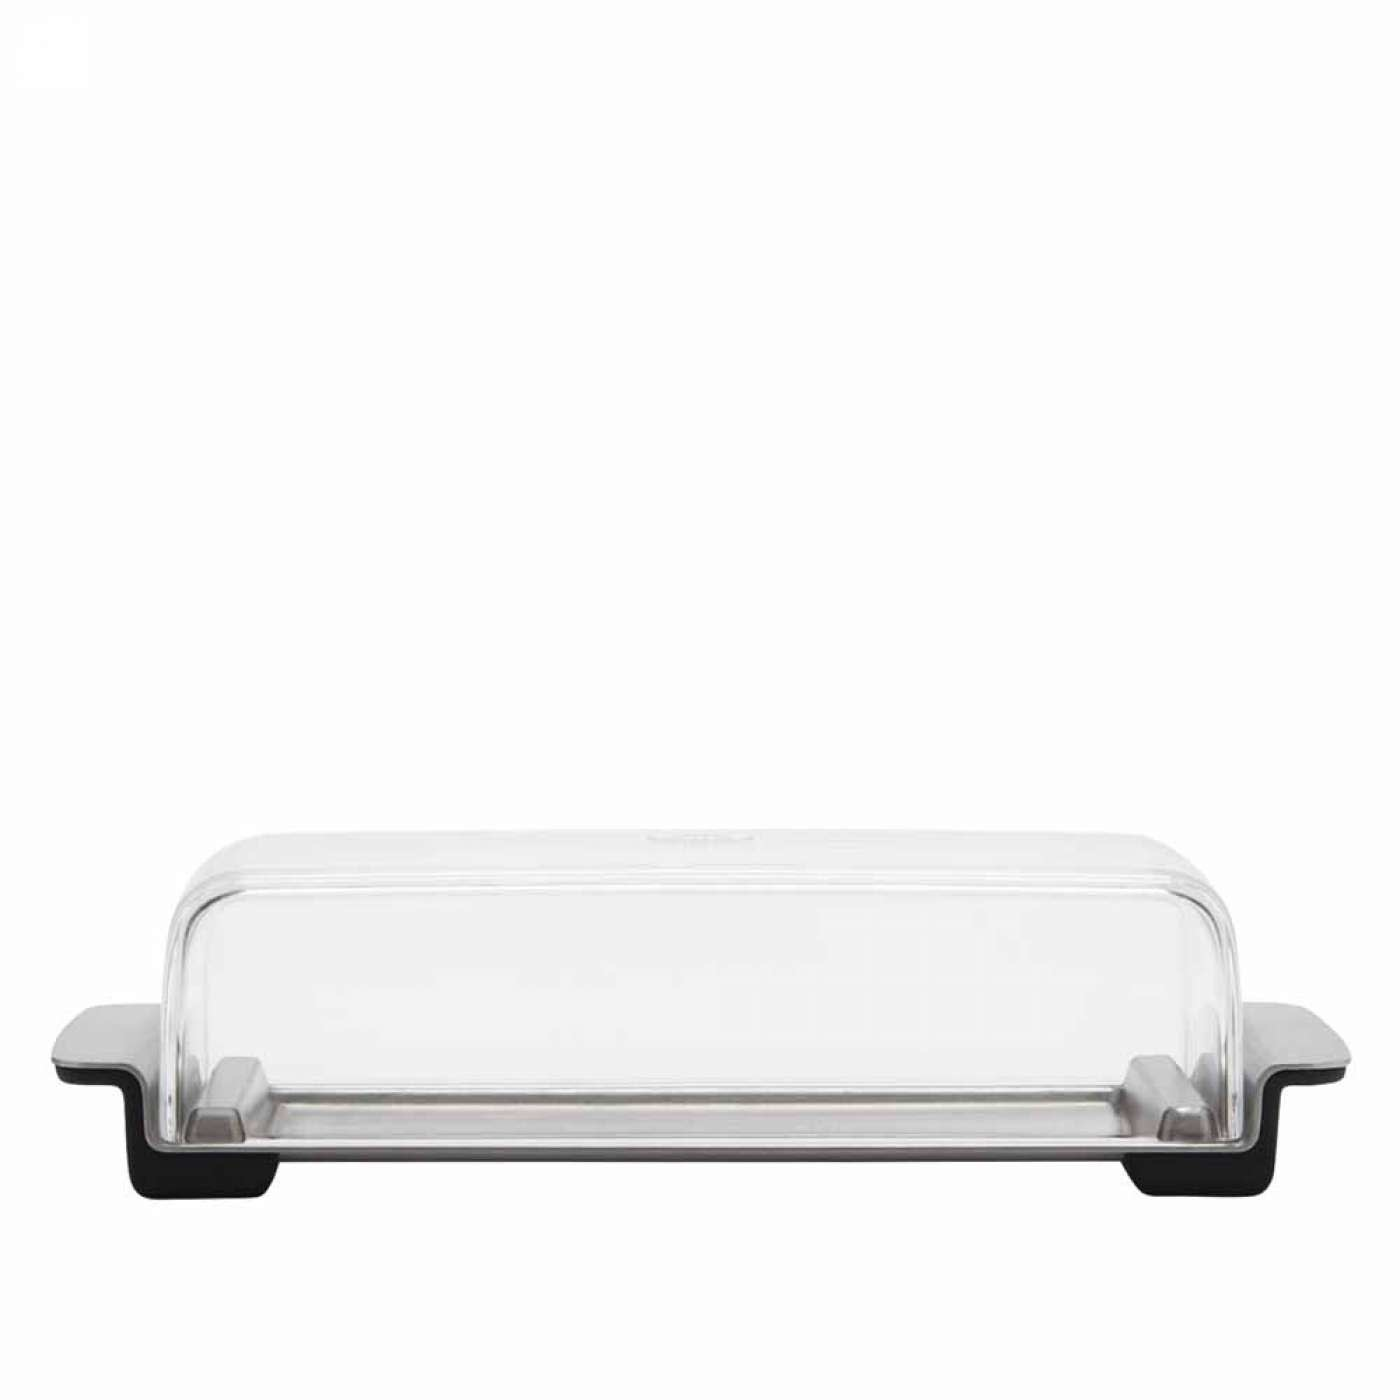 Oxo Stainless Steel Butter Dish